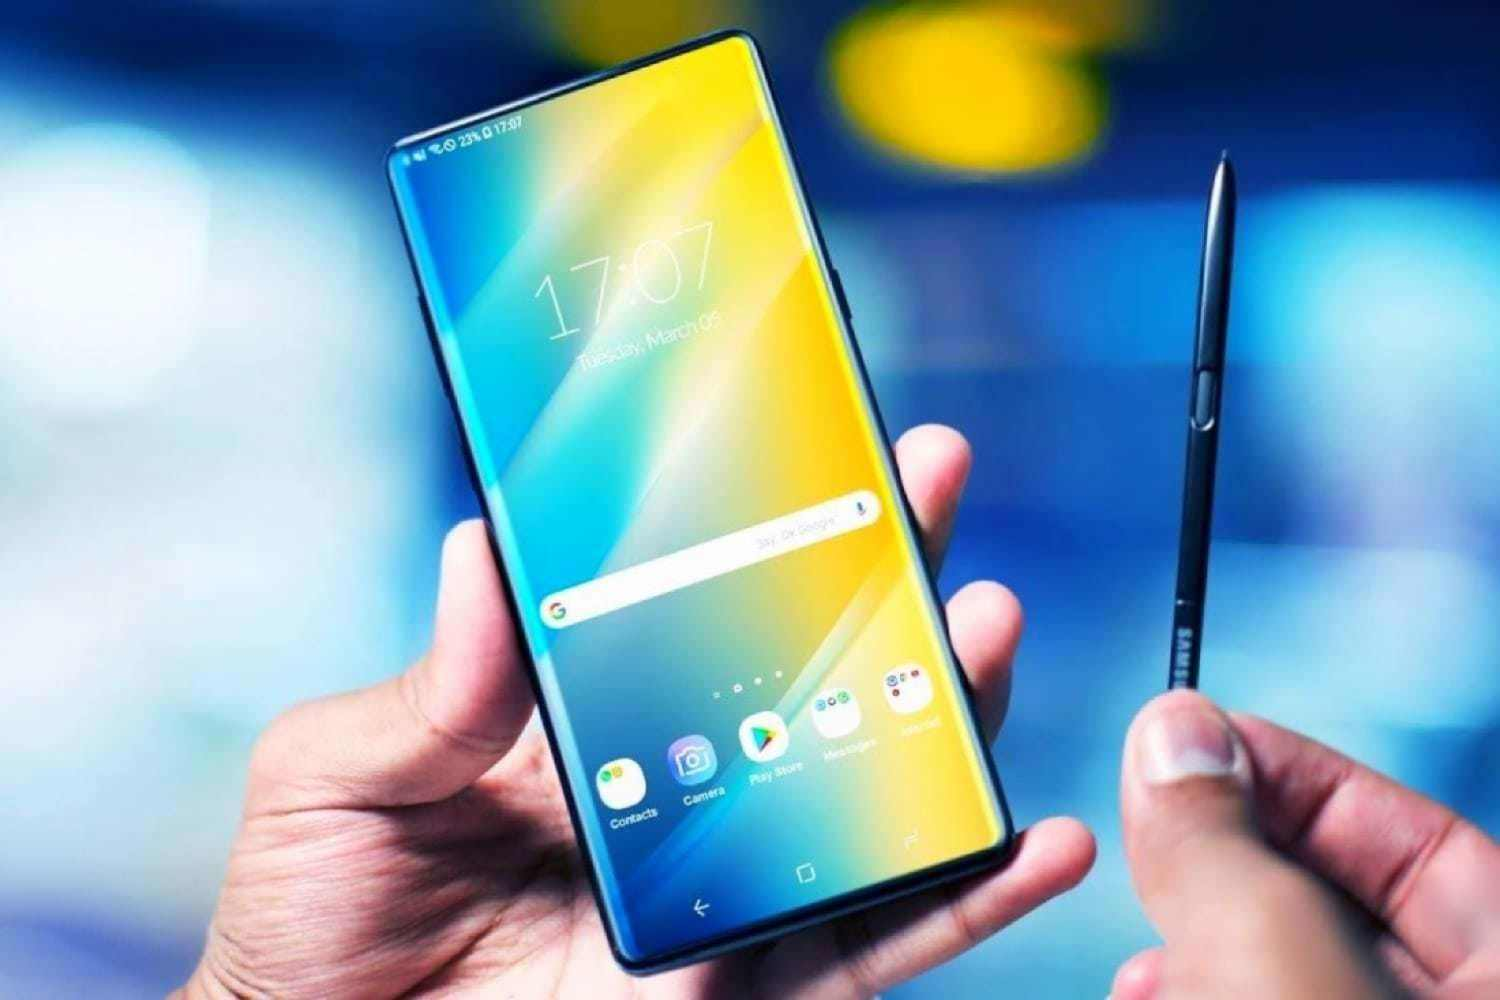 Официальные изображения Samsung Galaxy Note 10 утекли до анонса